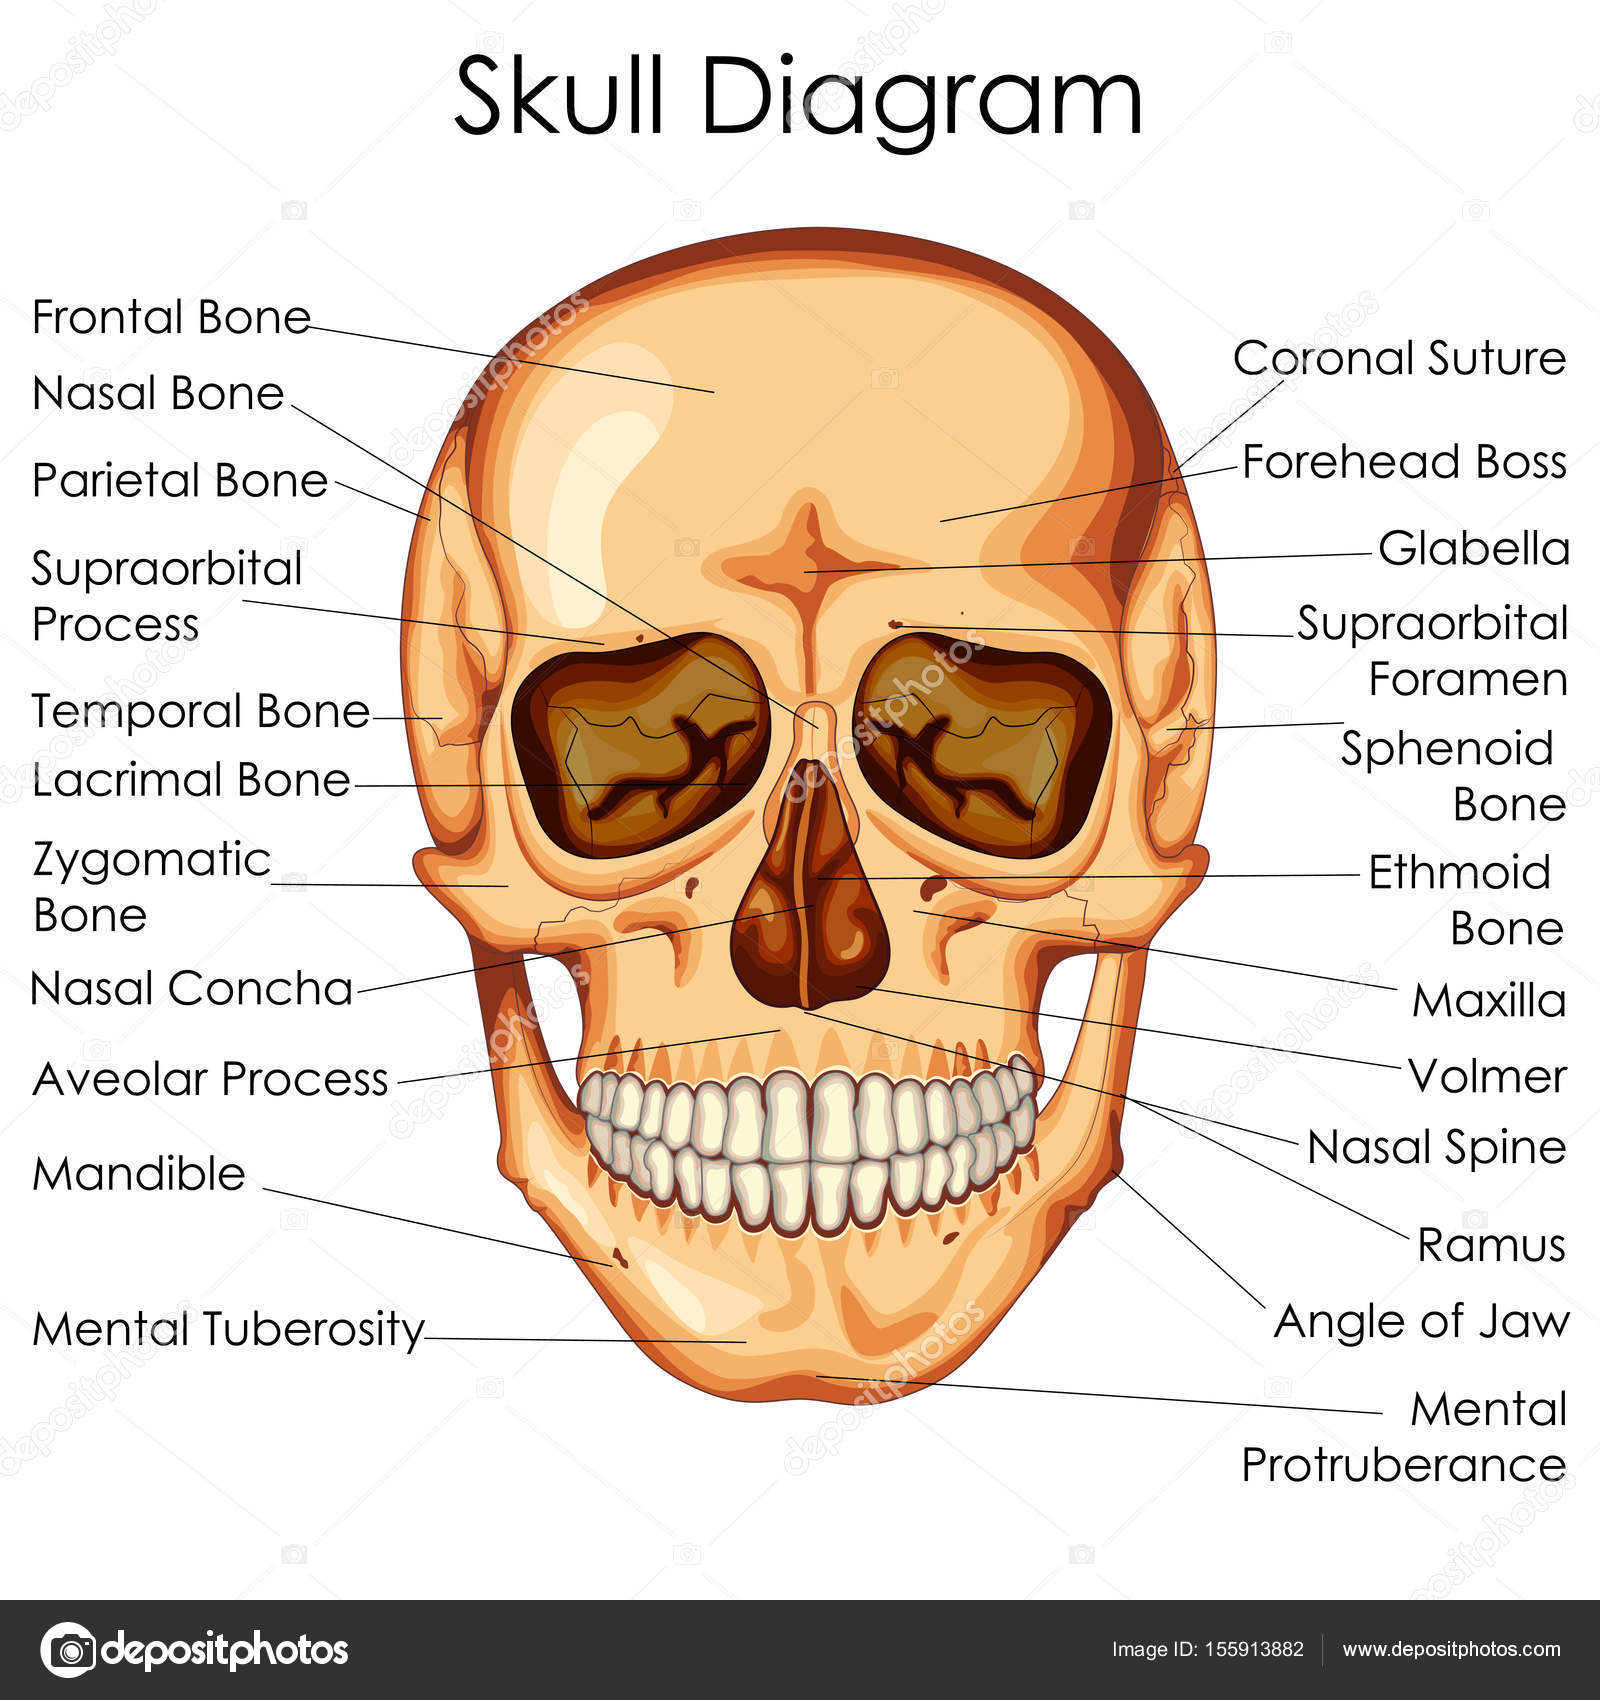 medical education chart of biology for human skull diagram — stock vector